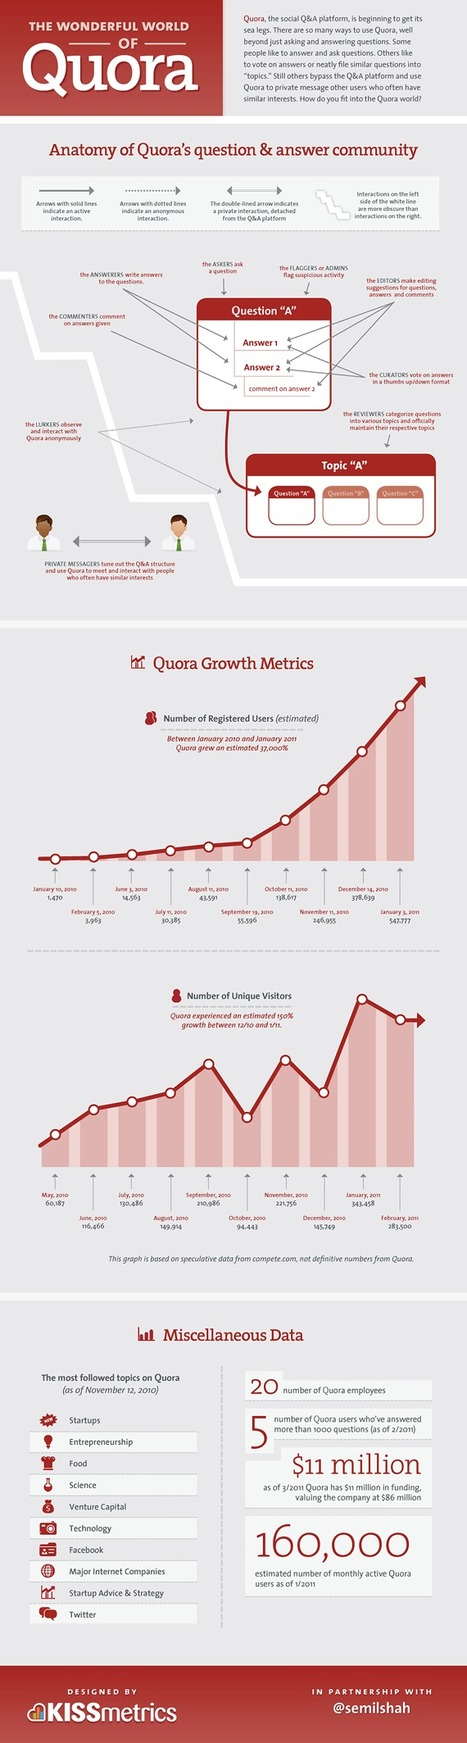 The Wonderful World Of Quora | Wonderful World of the Web | Scoop.it